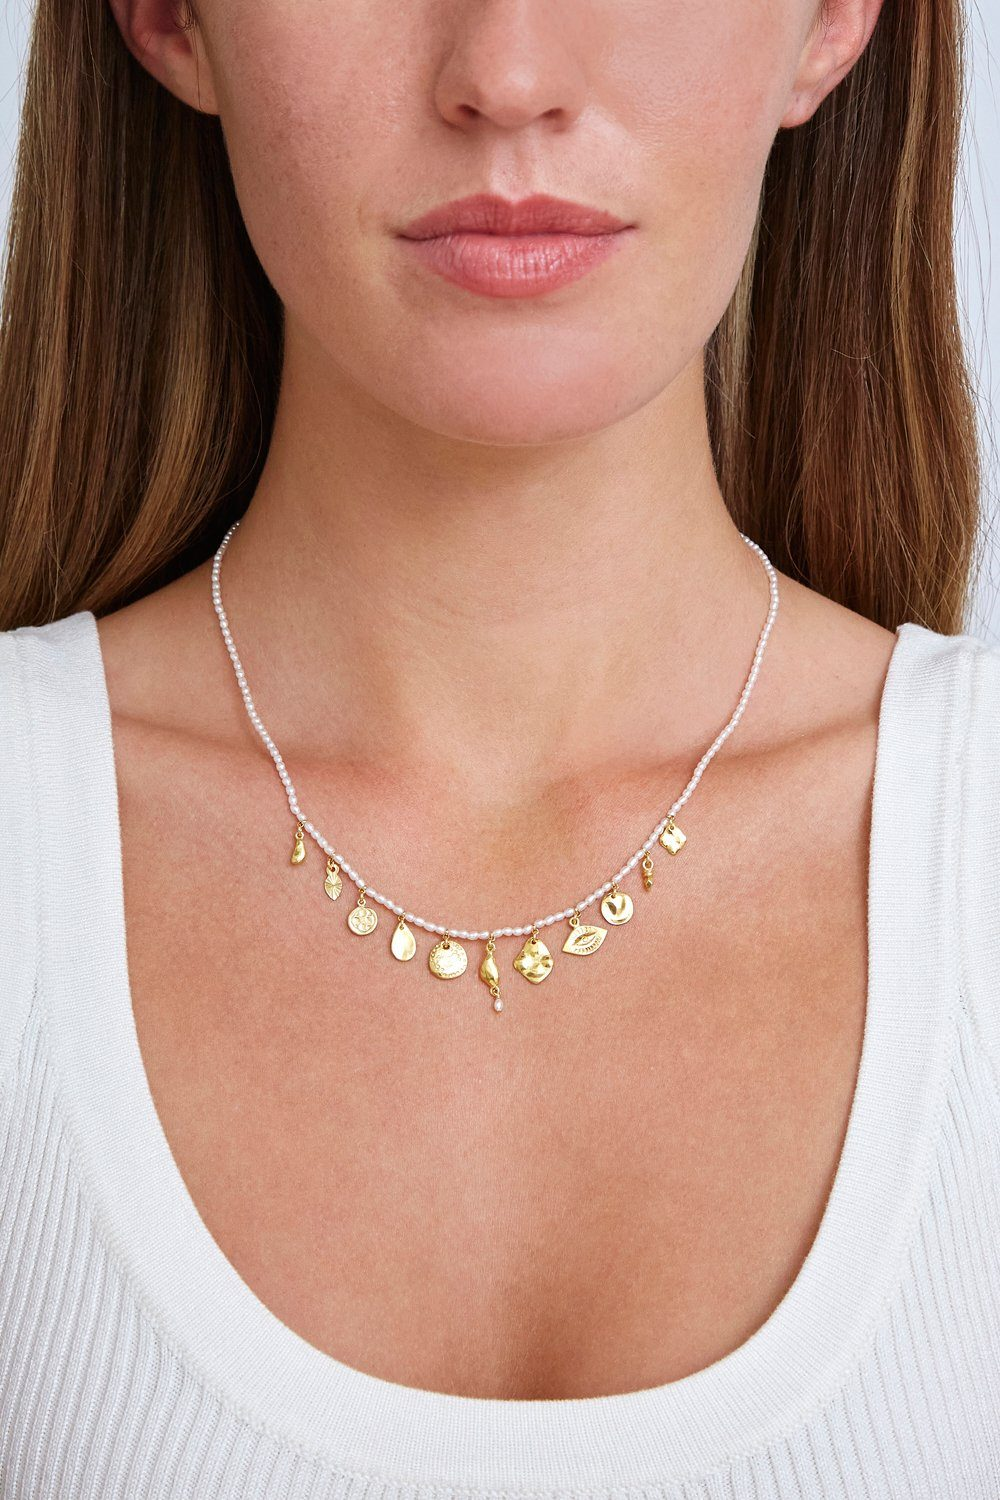 White Pearl and Gold Charm Necklace